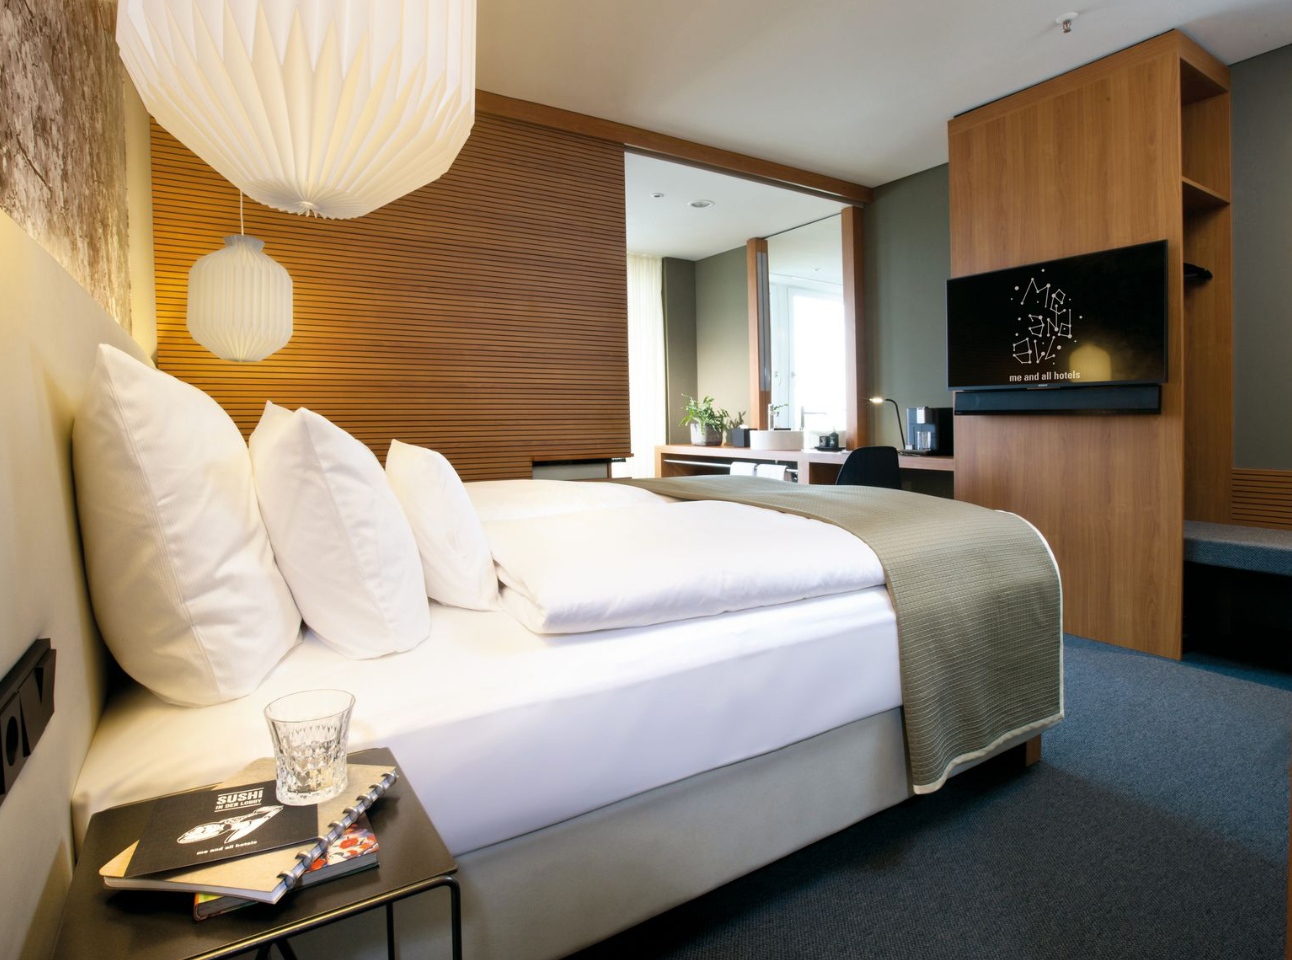 Bett 120x200 Interio Me And All Dusseldorf Hotel Bed